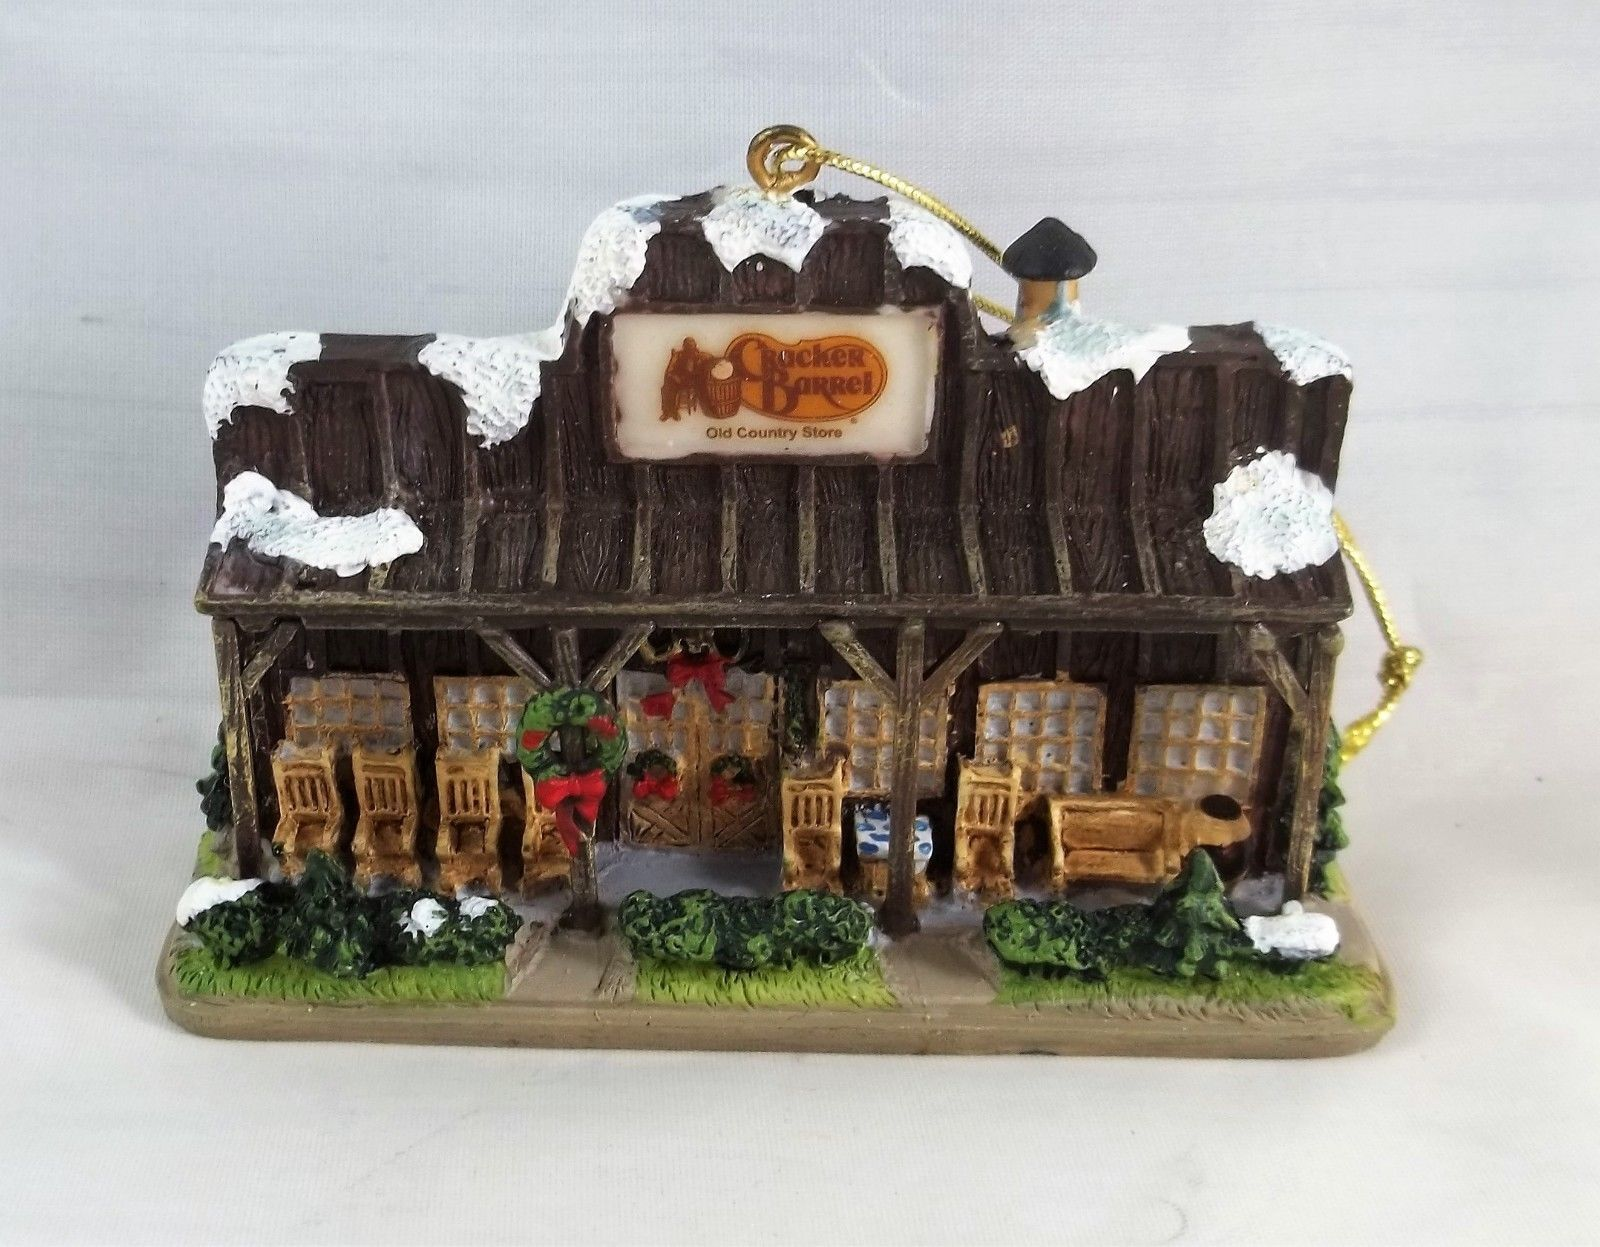 Cracker Barrel Old Country Store Resin Christmas Ornament Holiday  - $11.65